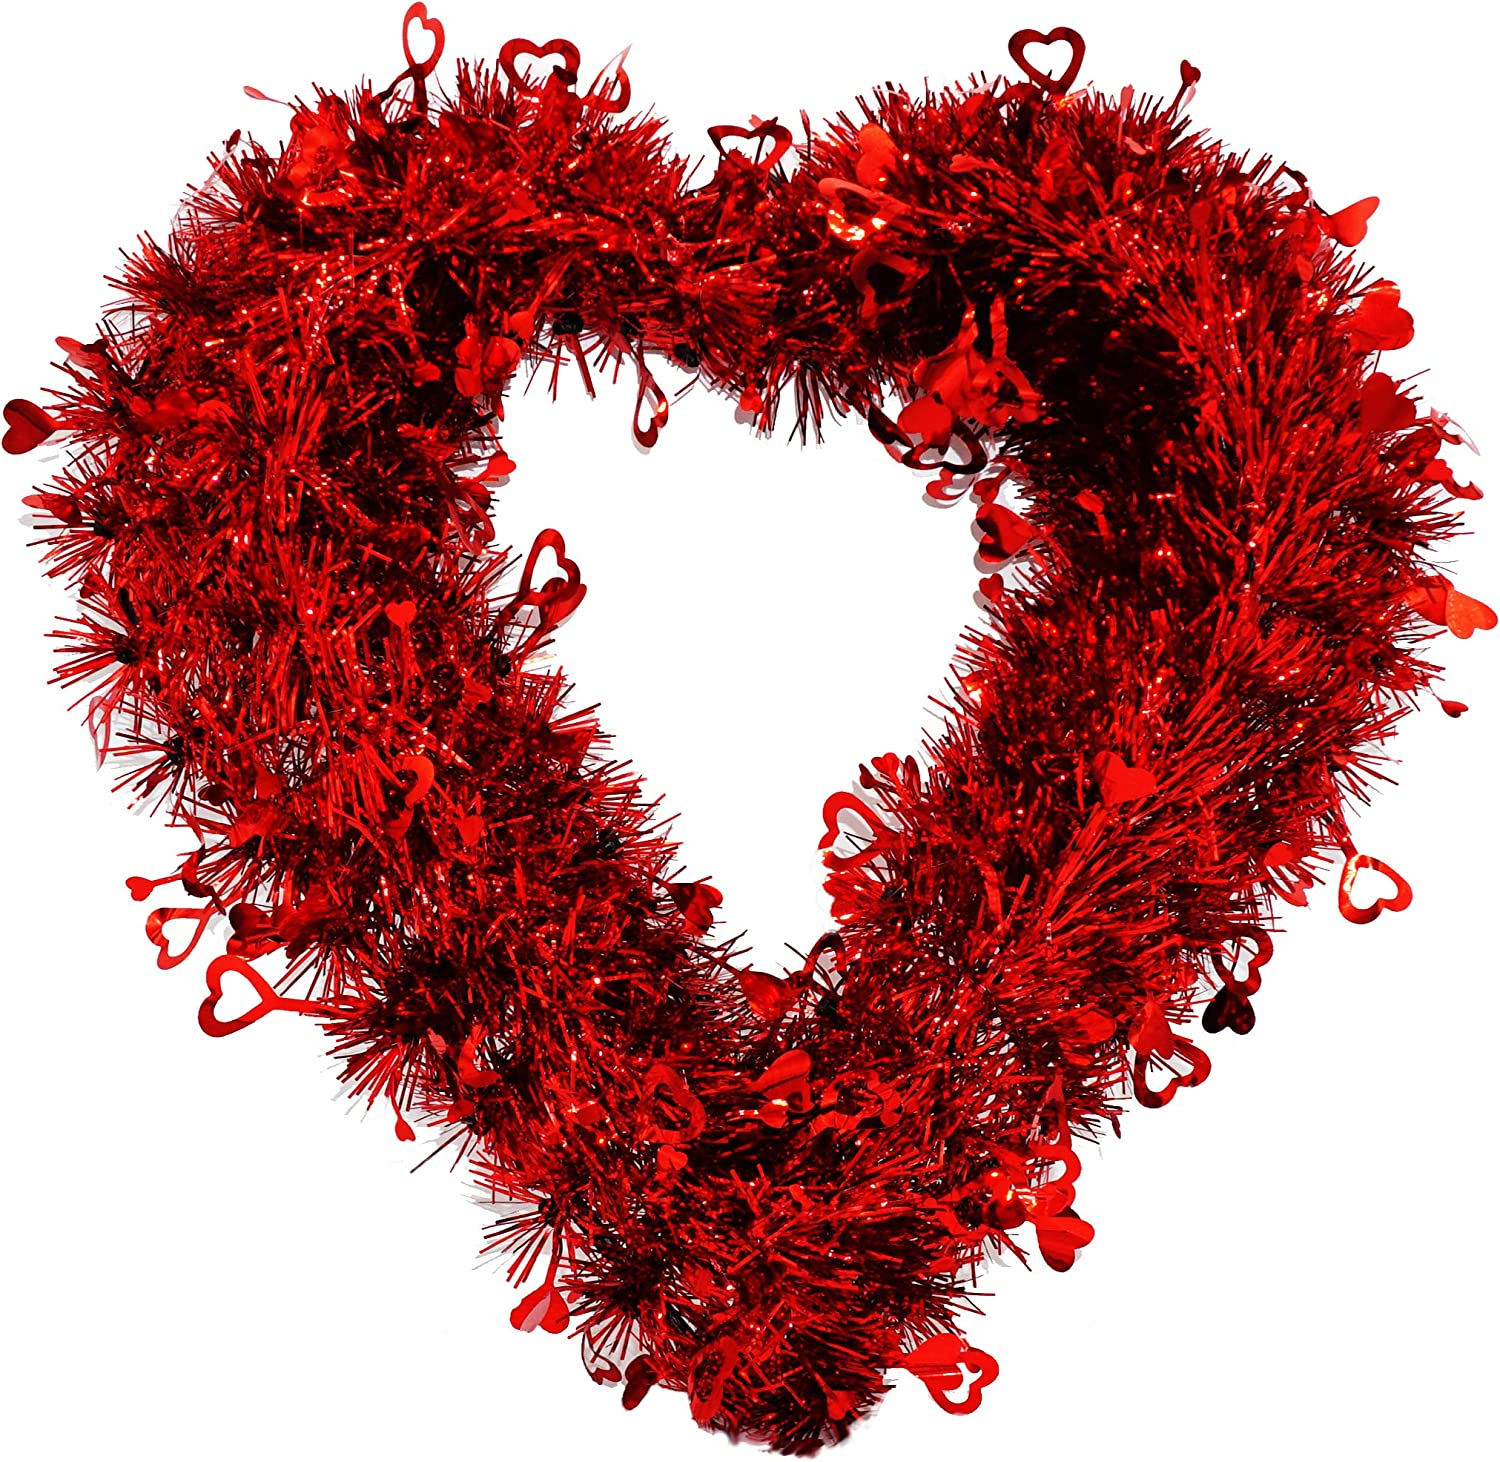 4E's Novelty Valentine's Day Wreath for Front Door, Tinsel Heart Shaped Wreath Hanging Wall Decorations - 14 Inches, Valentines Outdoor Décor